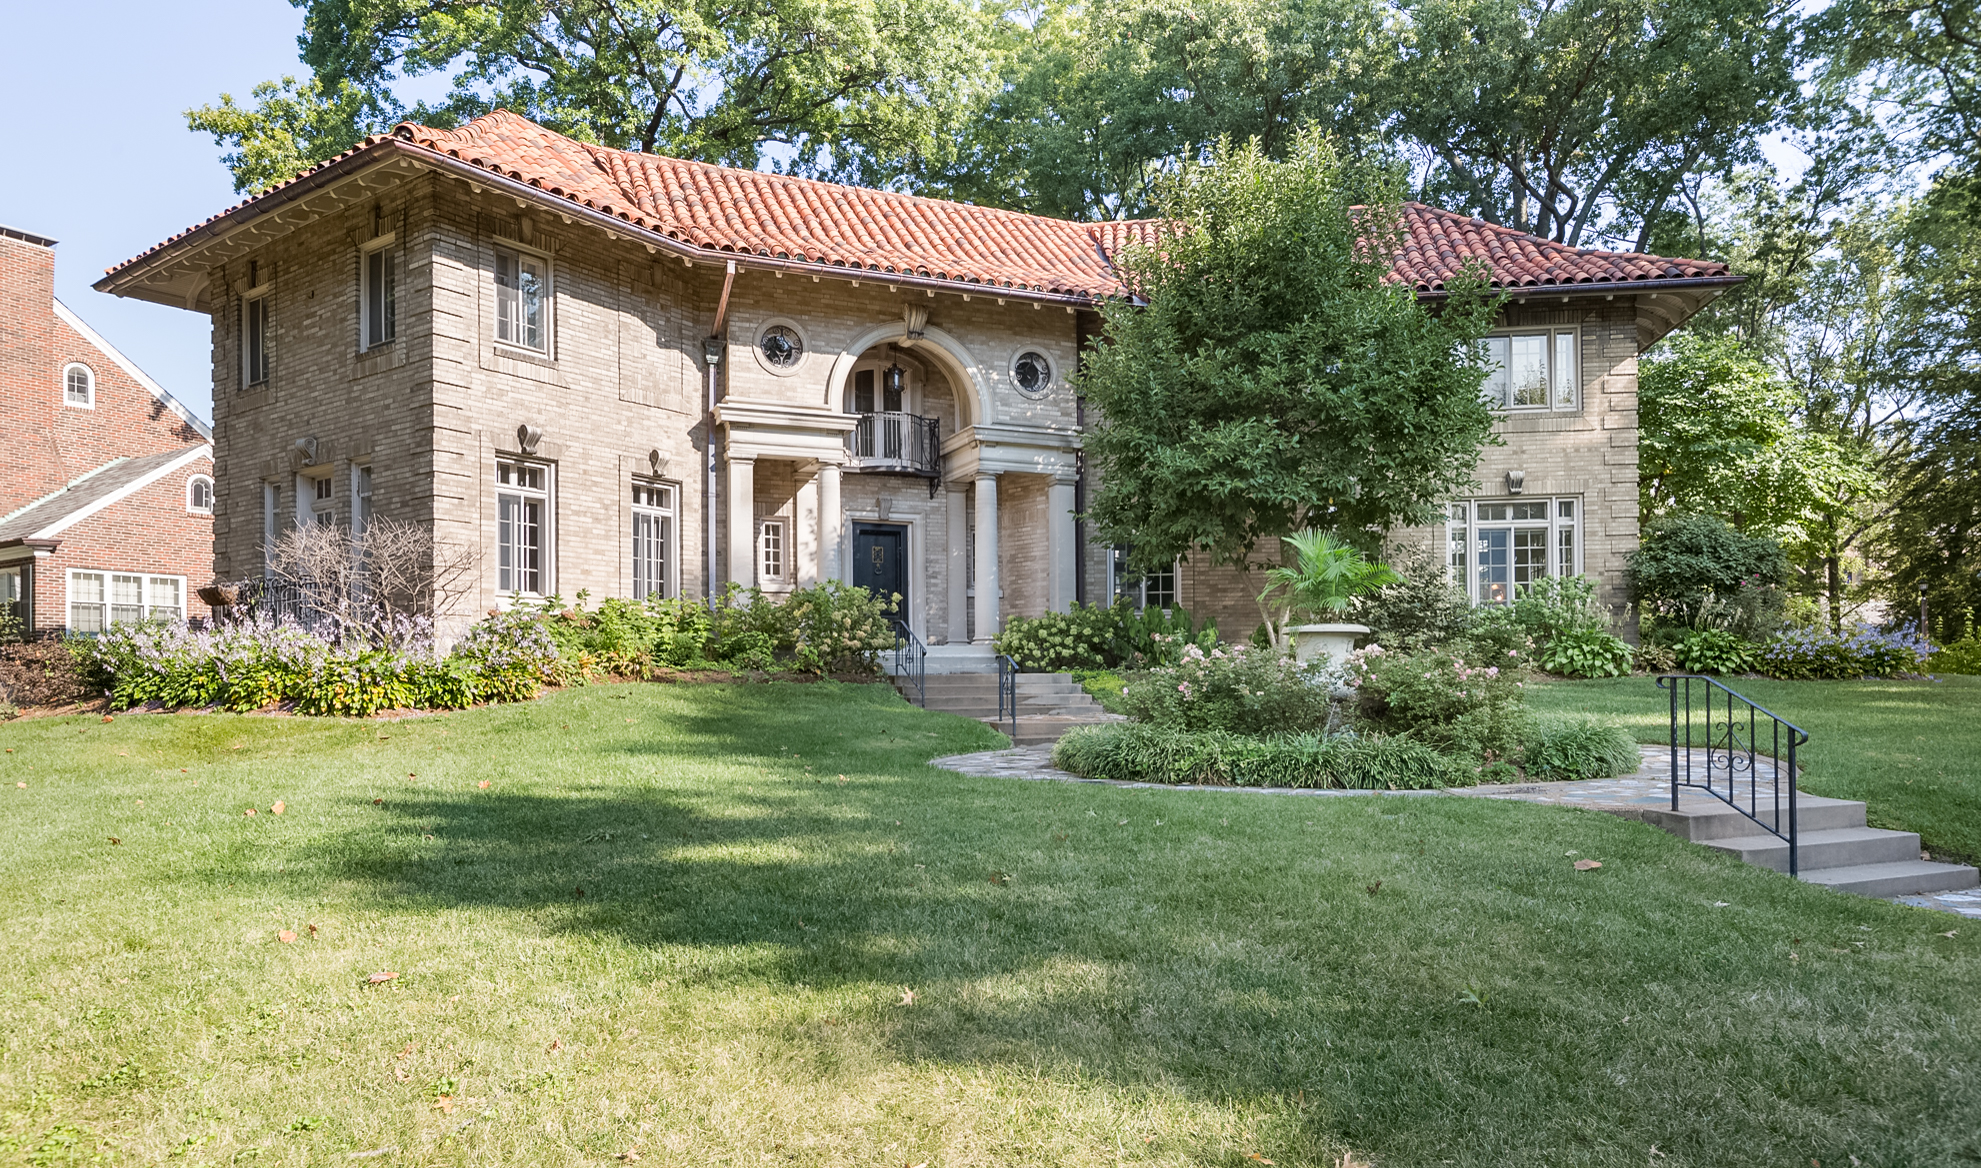 Single Family Homes for Sale at Italian Renaissance Masterpiece in the University Hills Neighborhood 7201 Greenway Avenue University City, Missouri 63130 United States